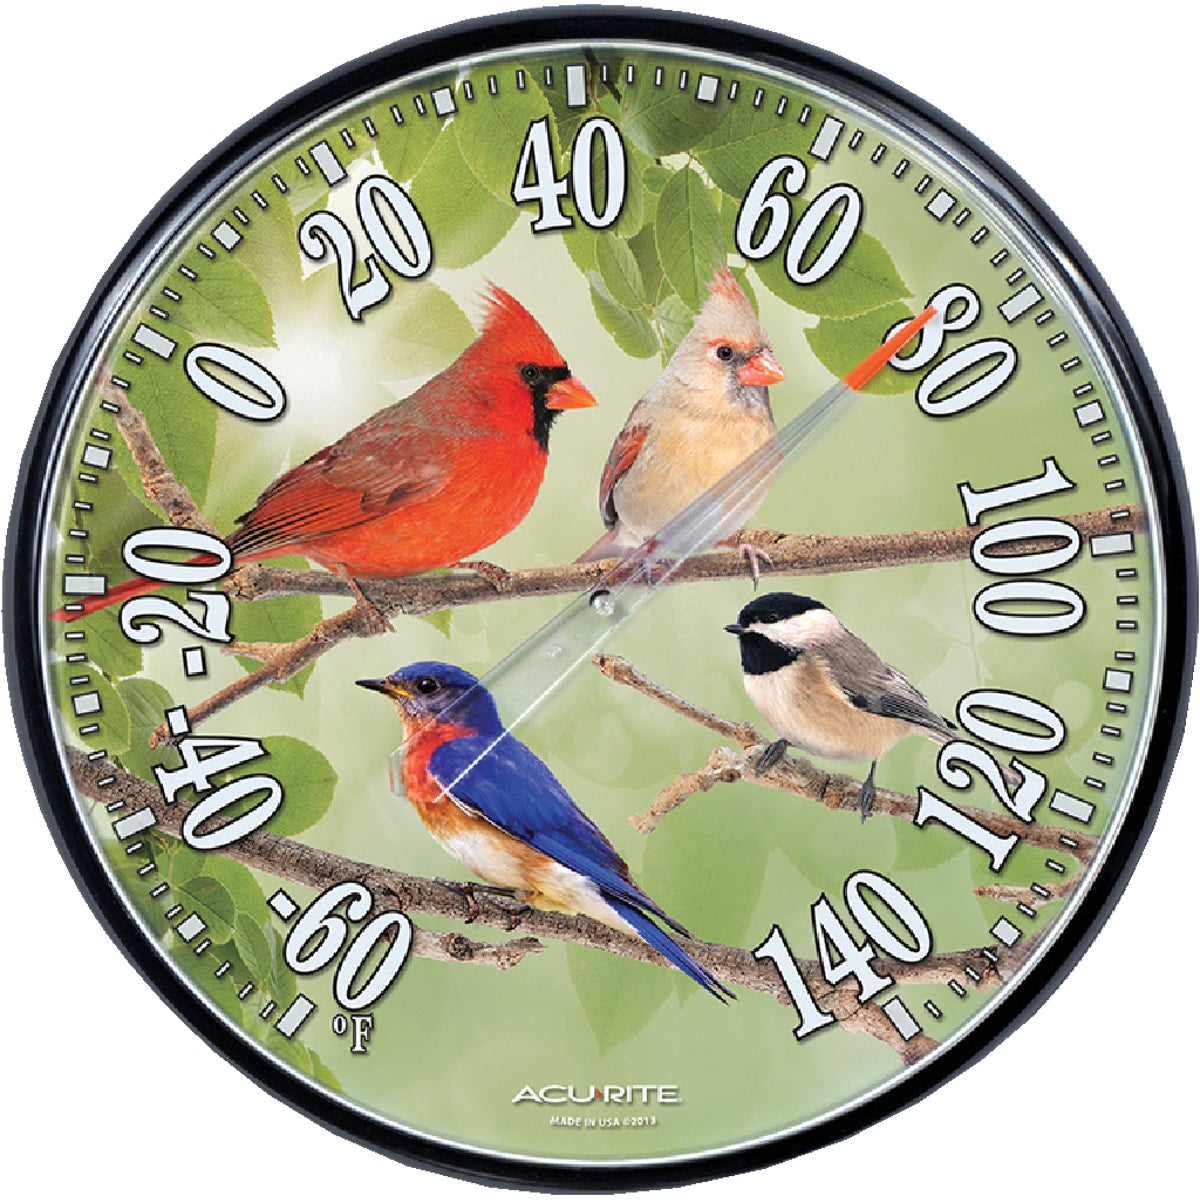 SONGBIRDS THERMOMETER - 01781A2 by Chaney Instrument Co